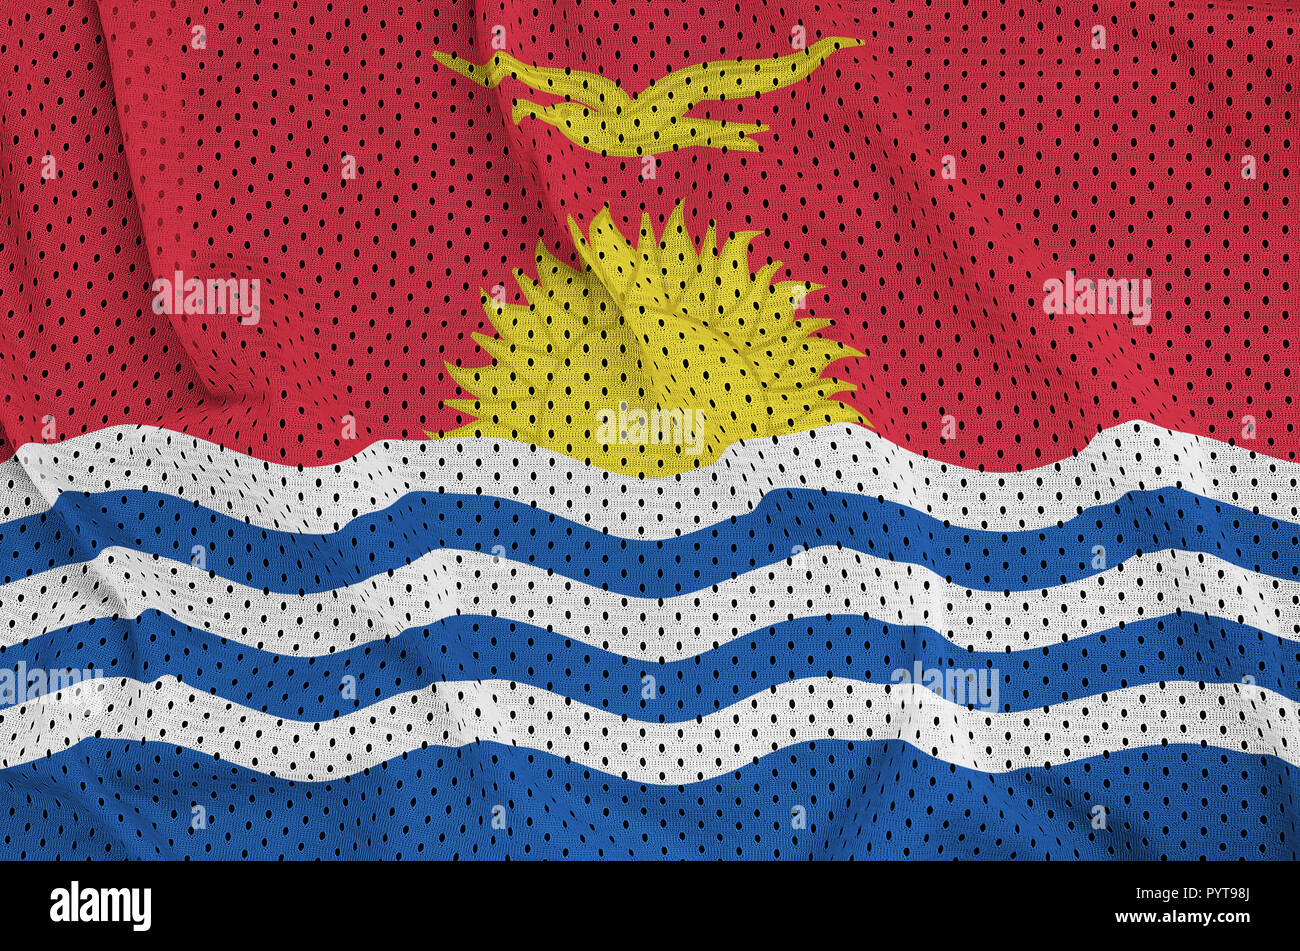 Kiribati flag printed on a polyester nylon sportswear mesh fabric with some folds - Stock Image